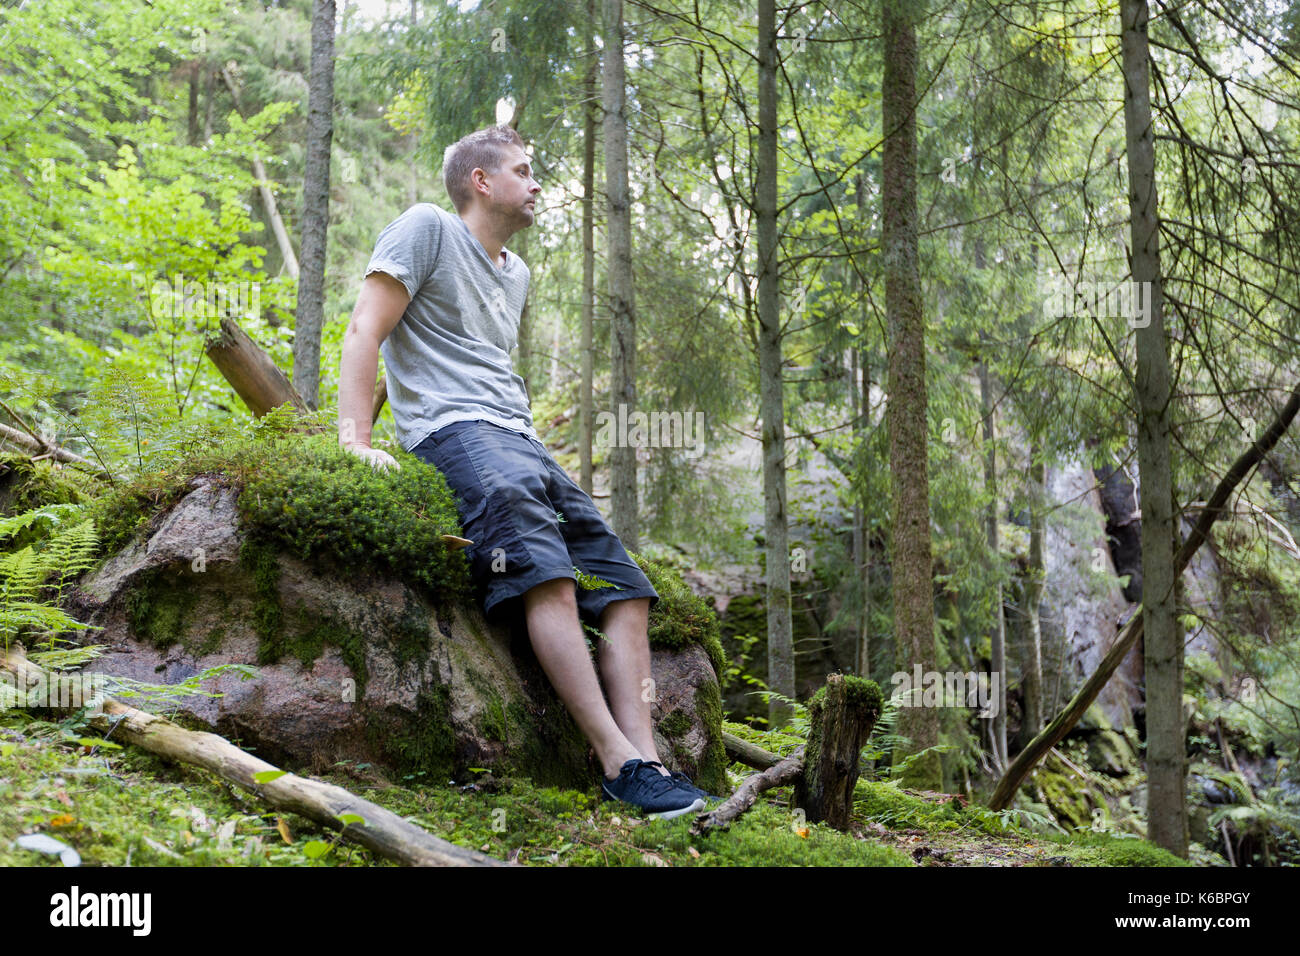 Mid adult caucasian man outdoors in tranquil forest relaxing on rock  Model Release: Yes.  Property Release: No. - Stock Image